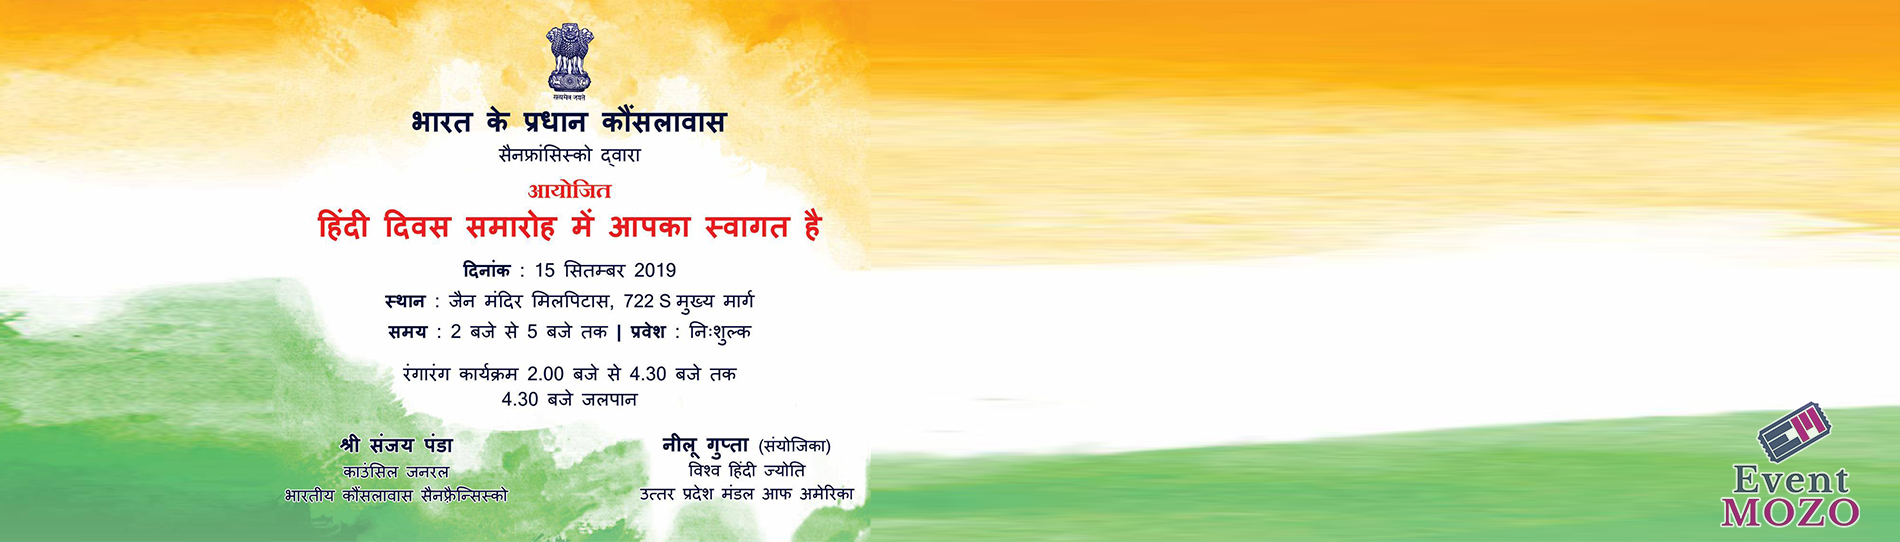 Welcome to the hindi day-2019 celebration